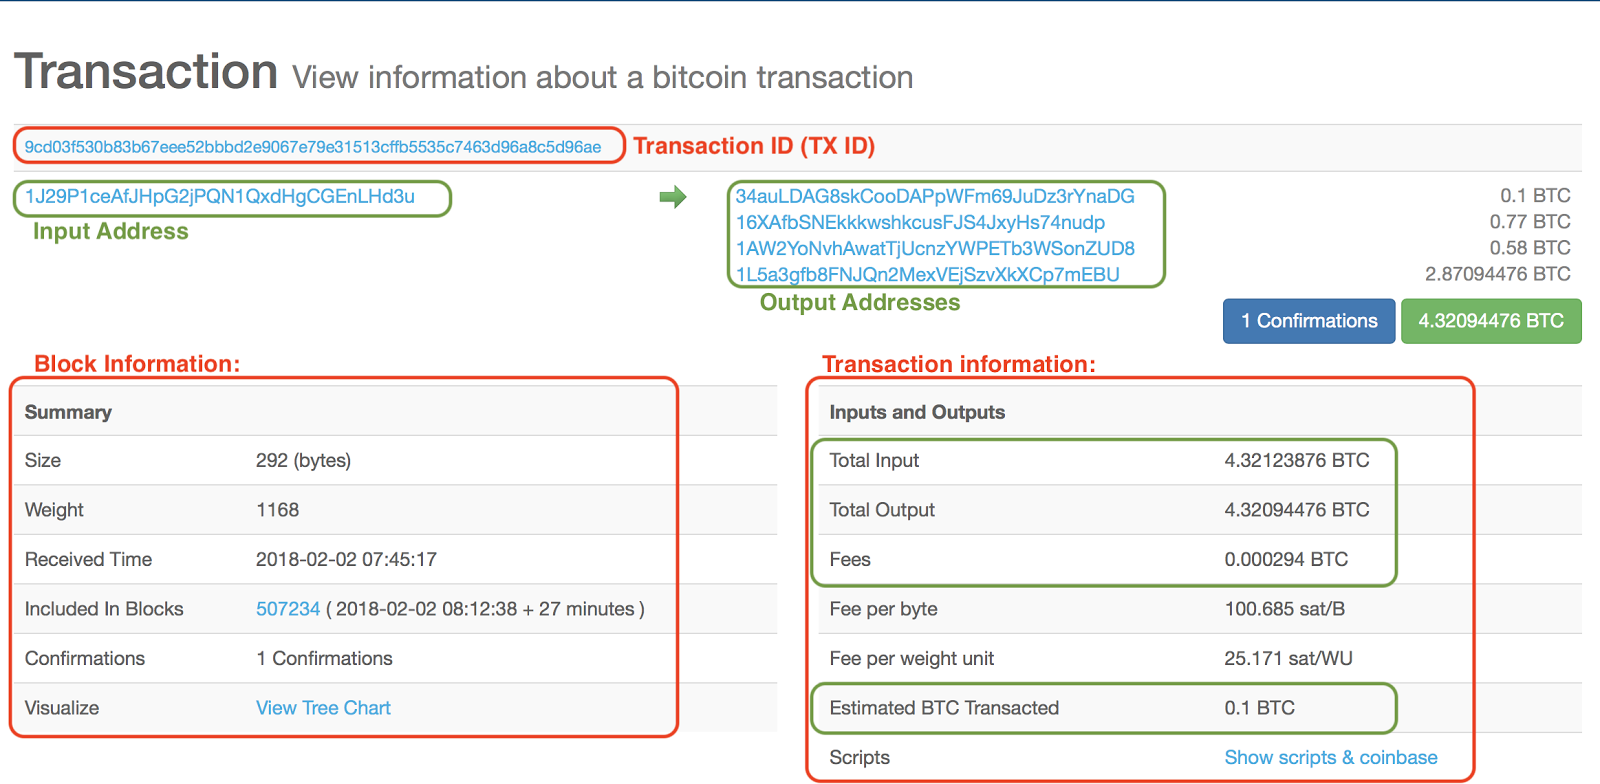 Transaction Hash ID (TXID) - What is it & how to find the transaction ID